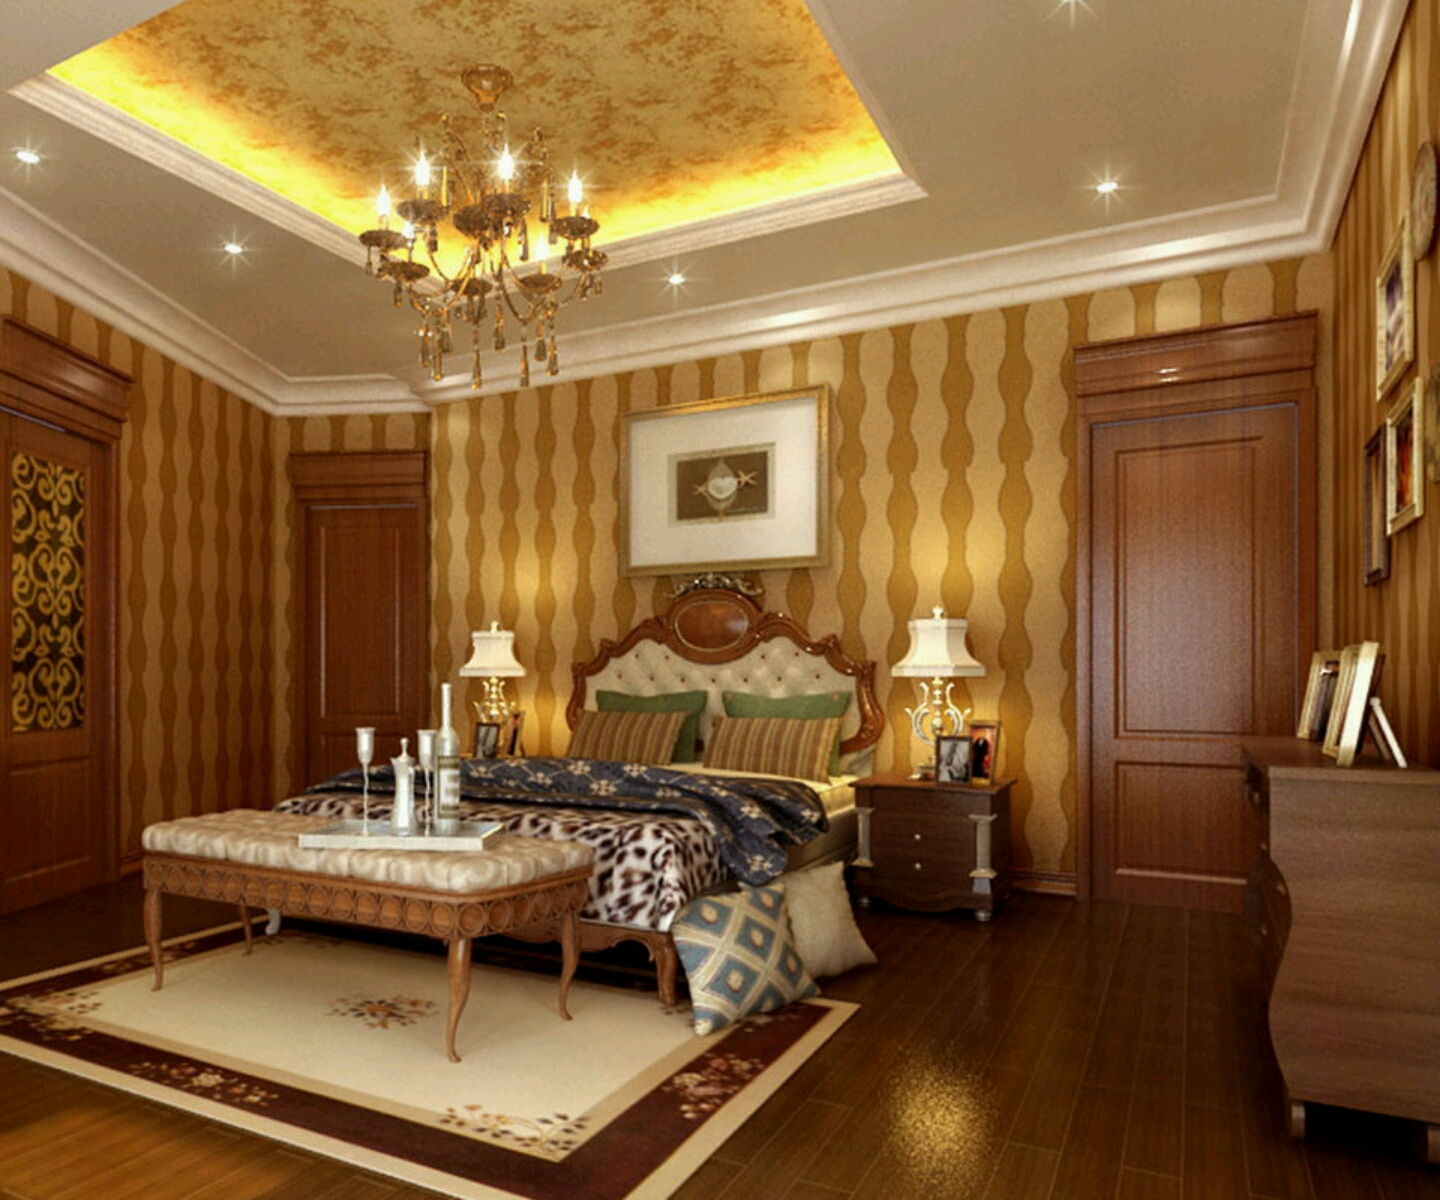 Bedroom design ideas for your home interior times news uk